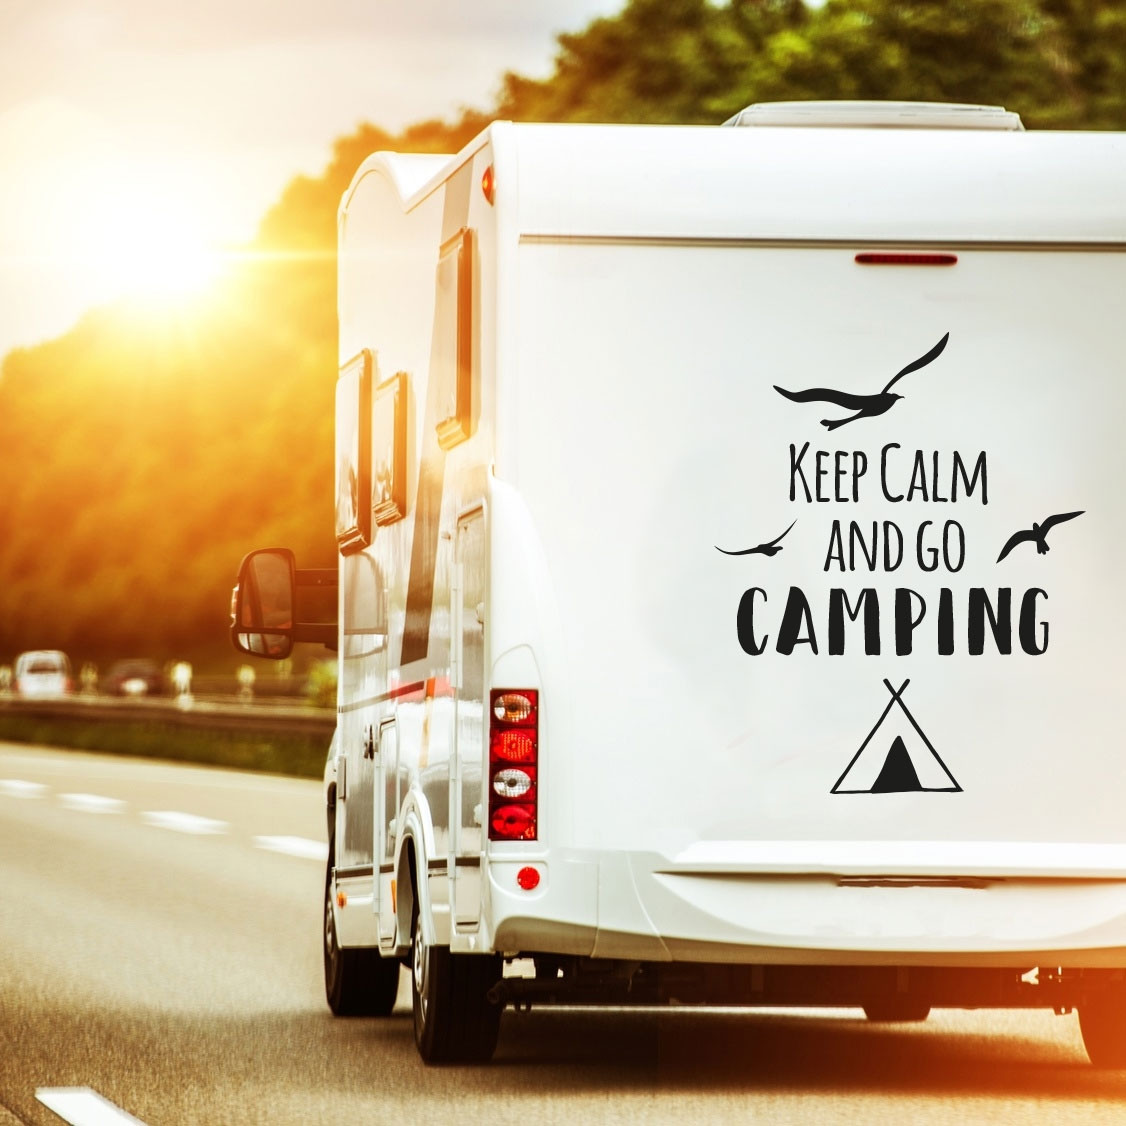 keep calm and go camping - rulota